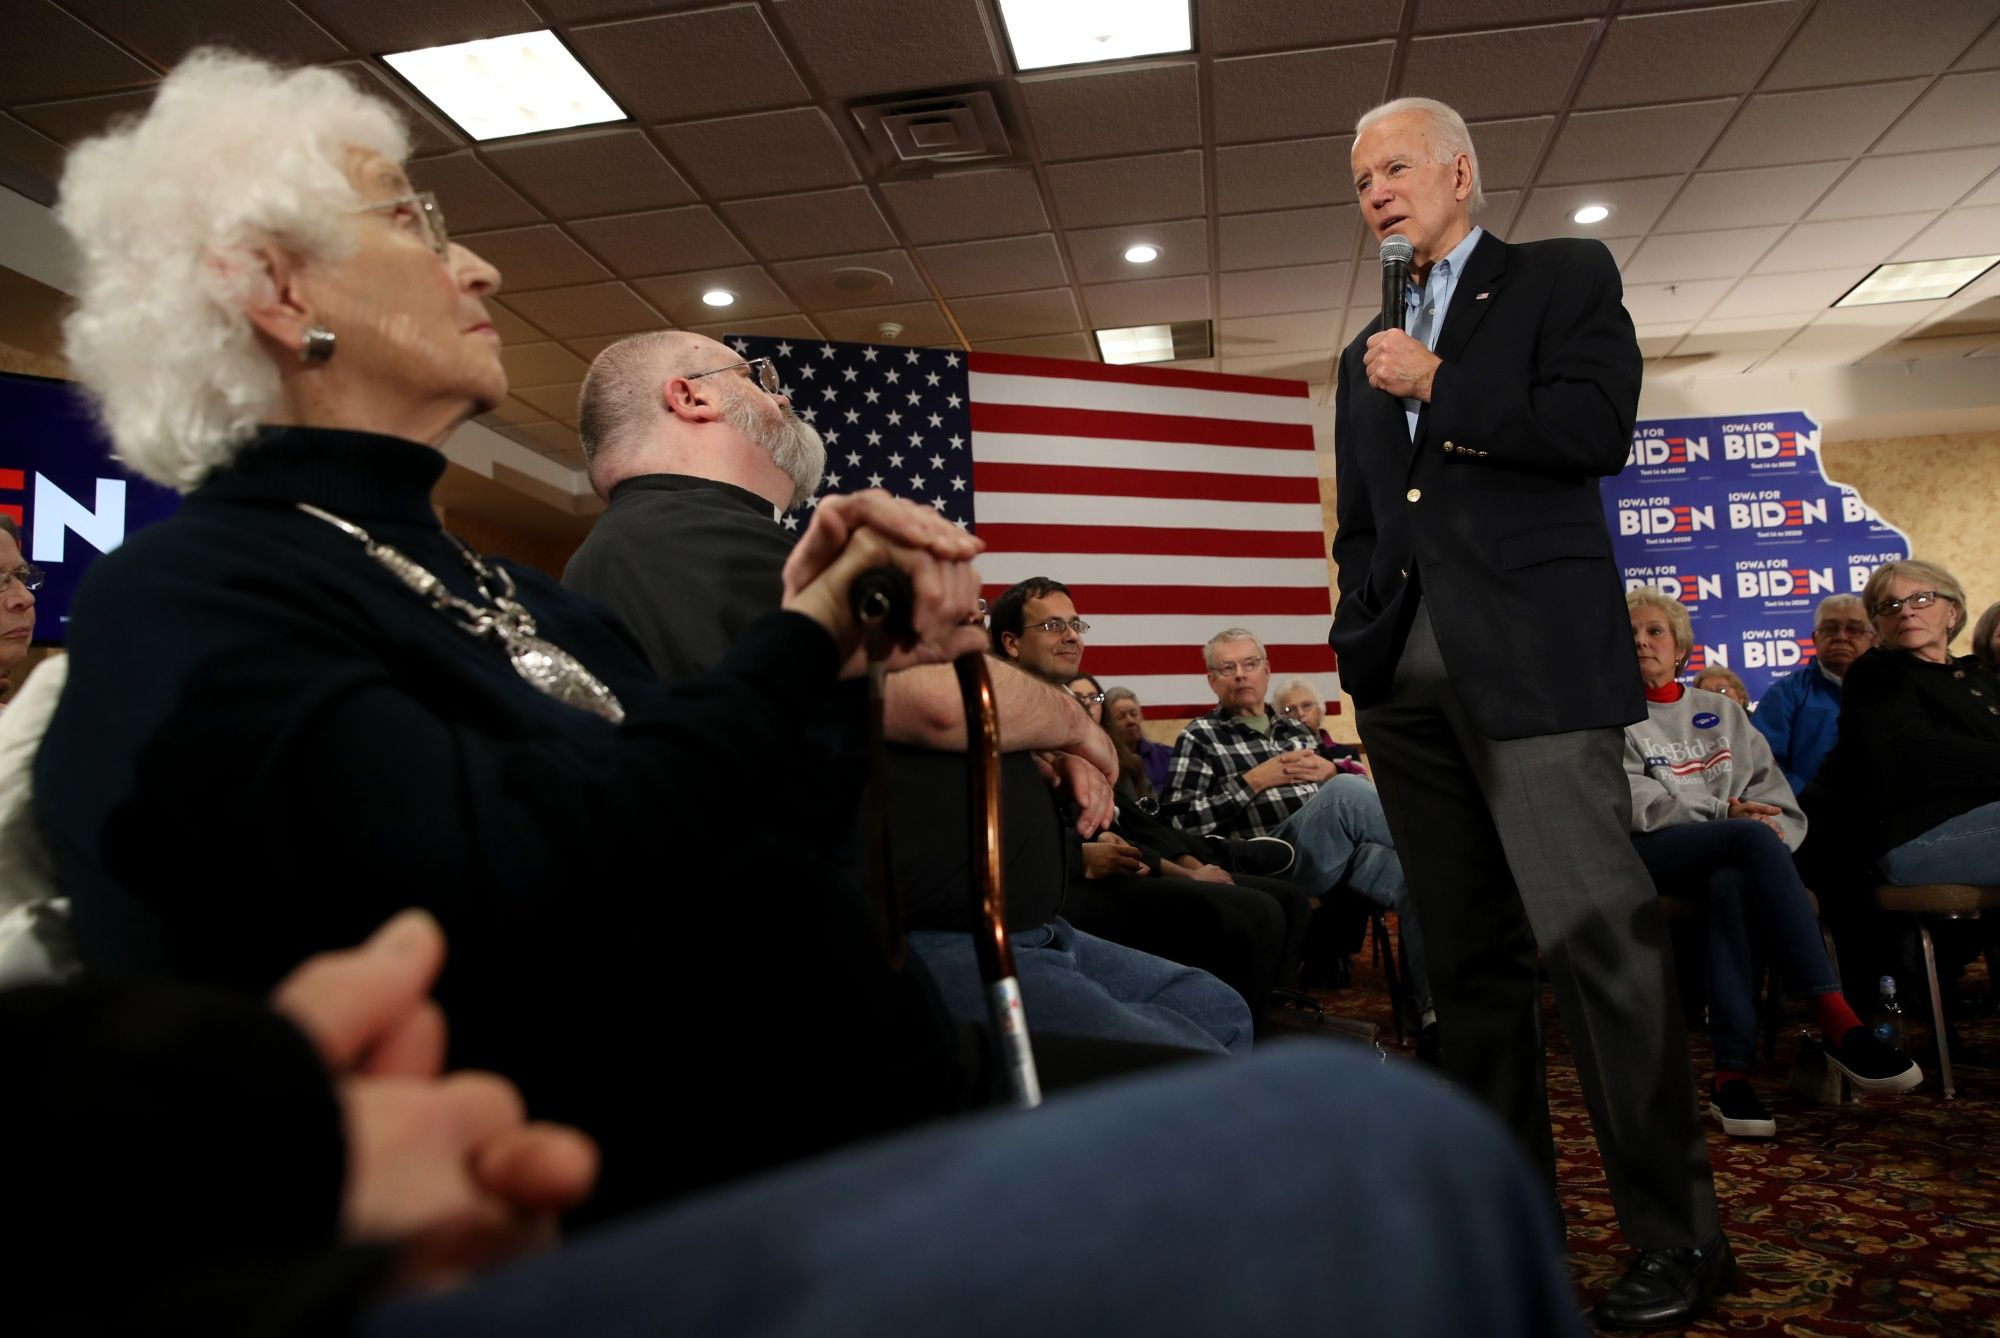 Biden Hopes for Strong Finish But Warns of Long Primary Fight